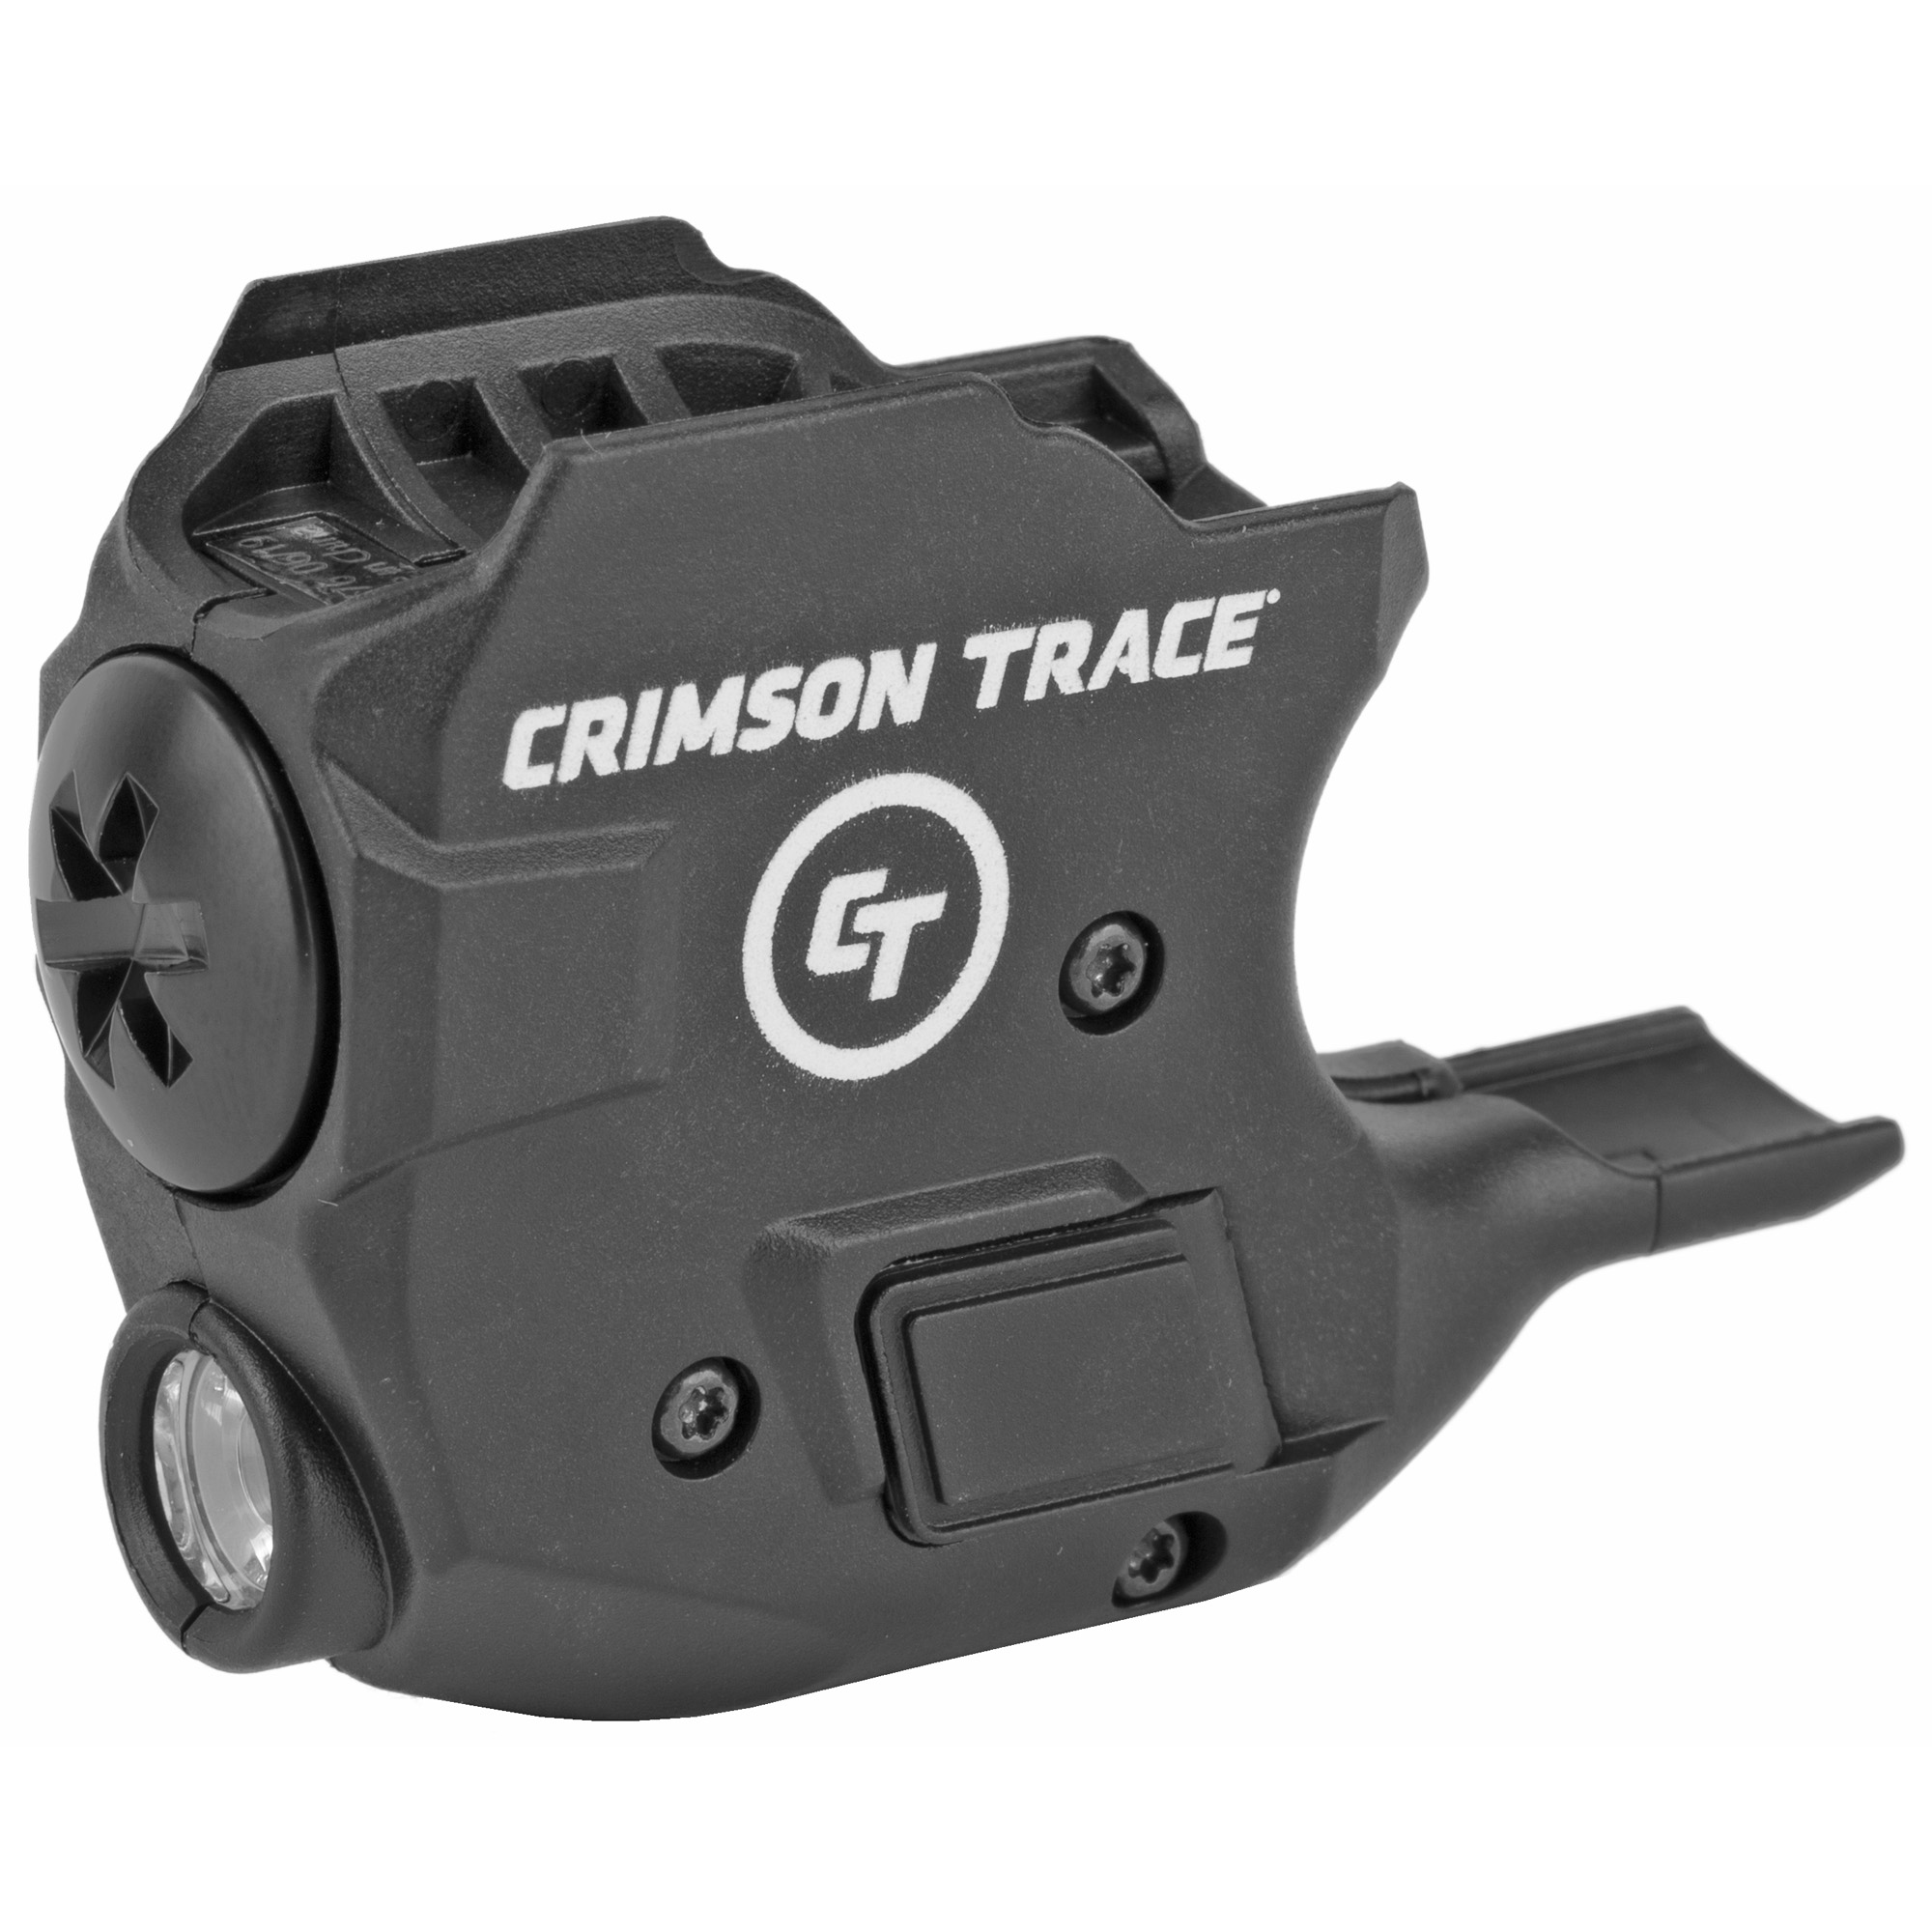 """The LTG-776 Lightguard(TM) is a 95 Lumen LED White Light designed to securely fit around the trigger guard of SIG Sauer P238 & P938 pistols. Featuring ambidextrous Instant Activation(TM) with Constant and Momentary modes"""" the LTG-776 offers over one (1) hour of illumination with two (2) 1/3N batteries (included). With ruggedized polymer construction and a rapid change battery cap"""" this tactical light offers effective illumination for P238 and P938 owners. A best-in-class weapon mounted light from the brand you trust for personal protection optics."""